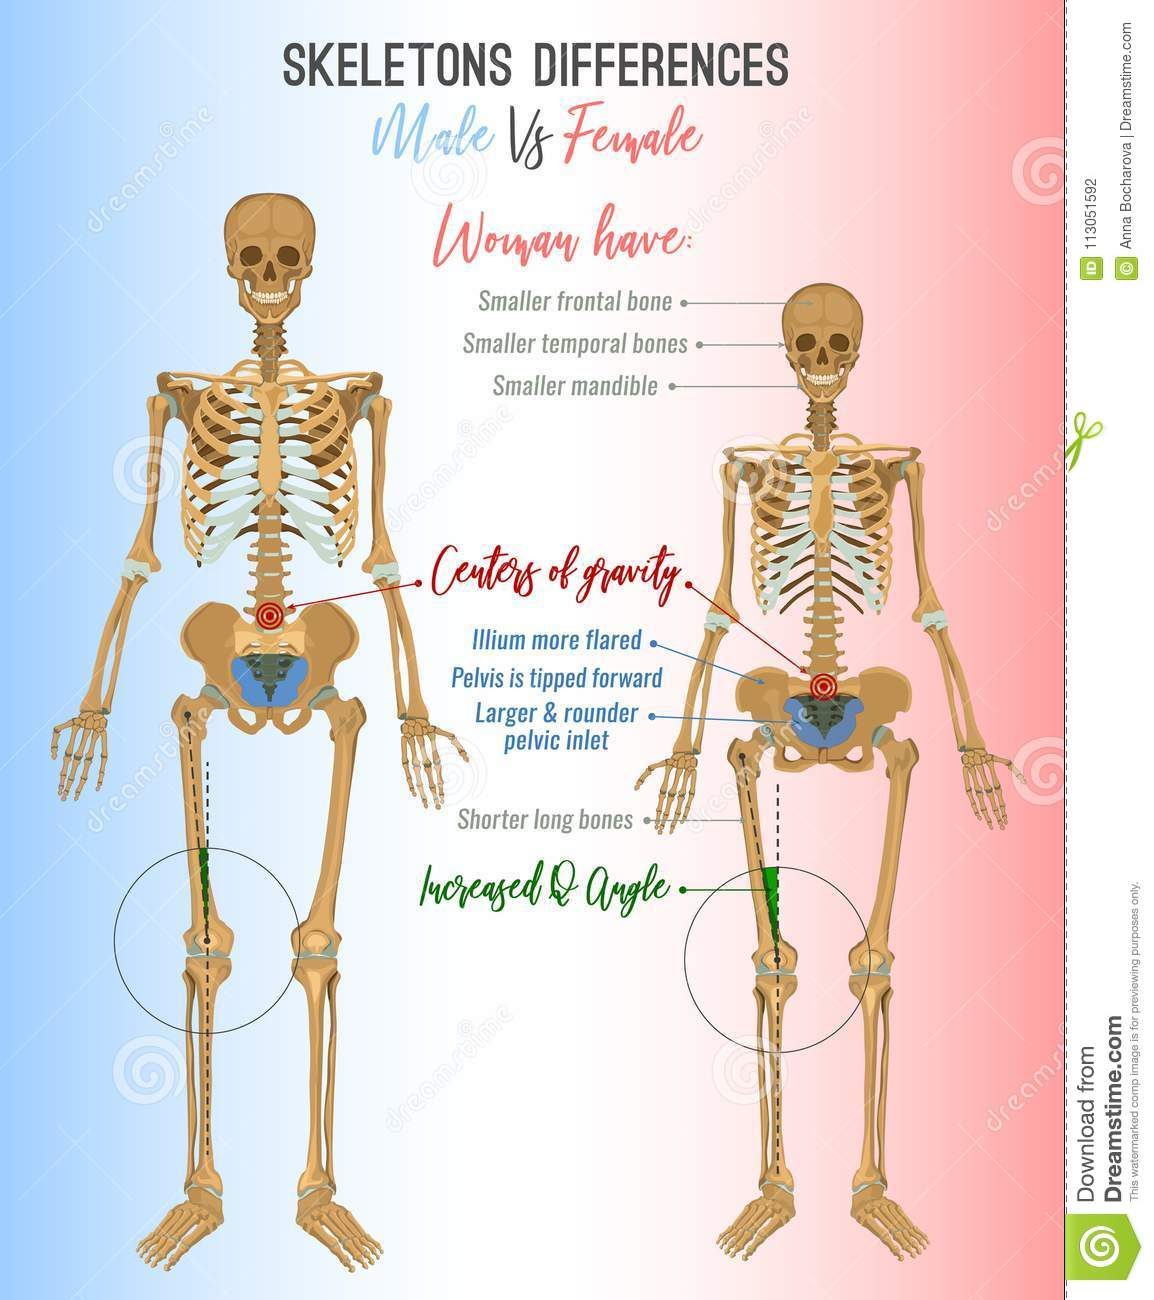 Skeleton differences image stock vector. Illustration of anatomy ...